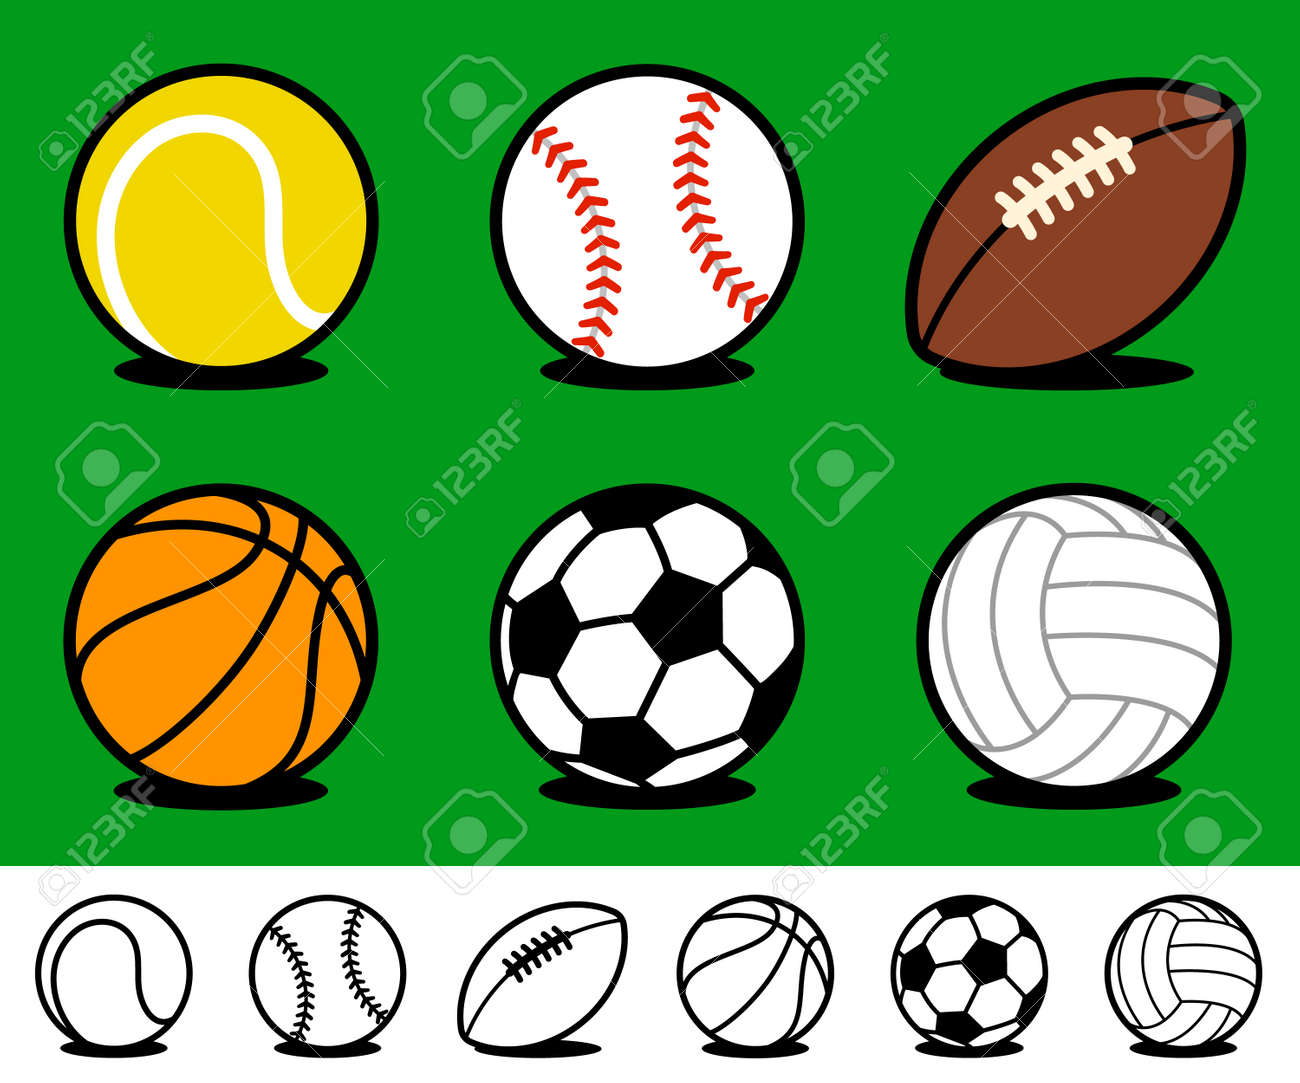 Set Of Six Different Colored Cartoon Sports Ball Icons With Accompanying Royalty Free Cliparts Vectors And Stock Illustration Image 96922792